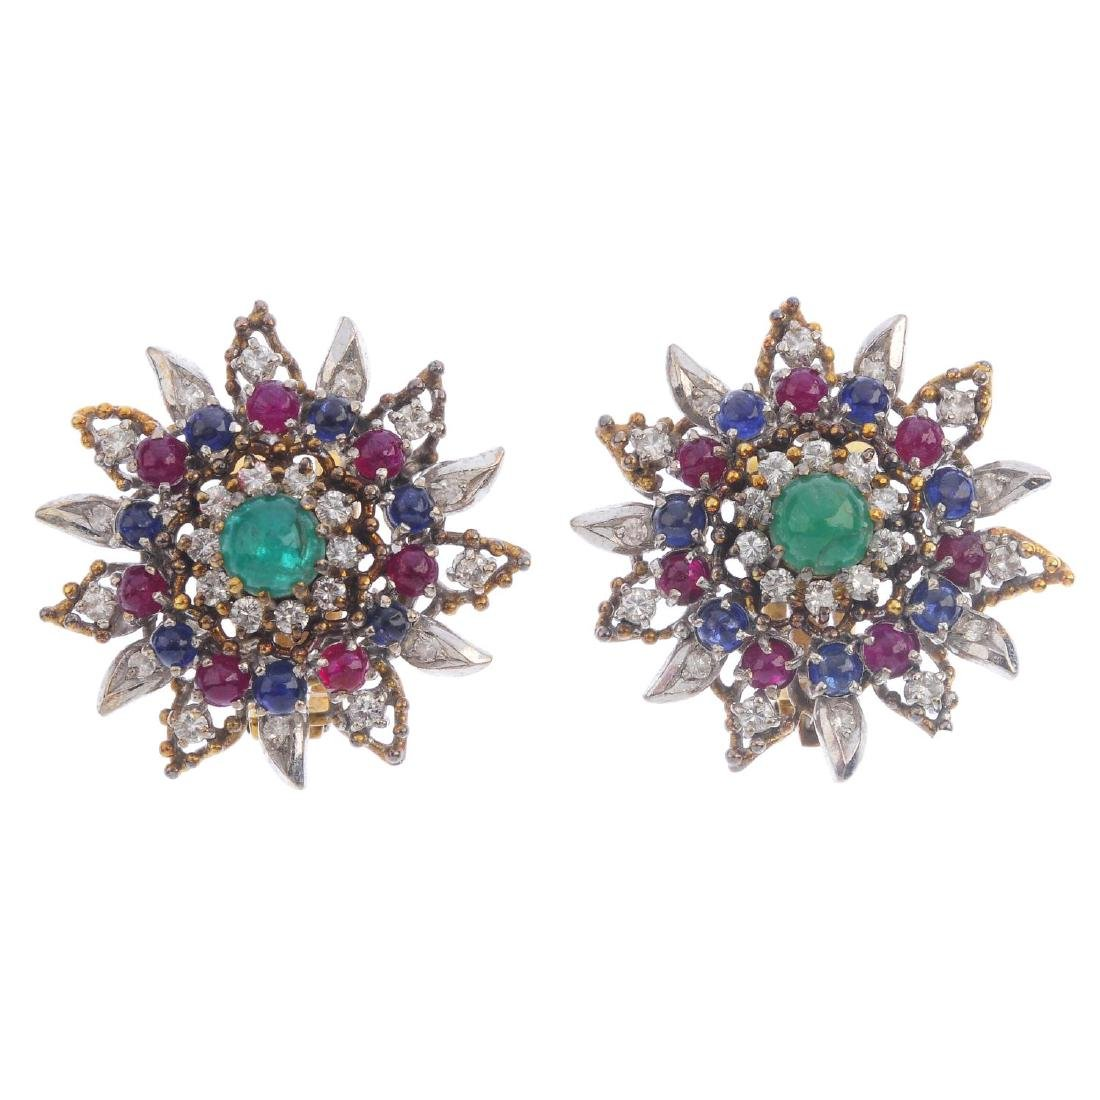 A pair of mid 20th century emerald, ruby, sapphire and